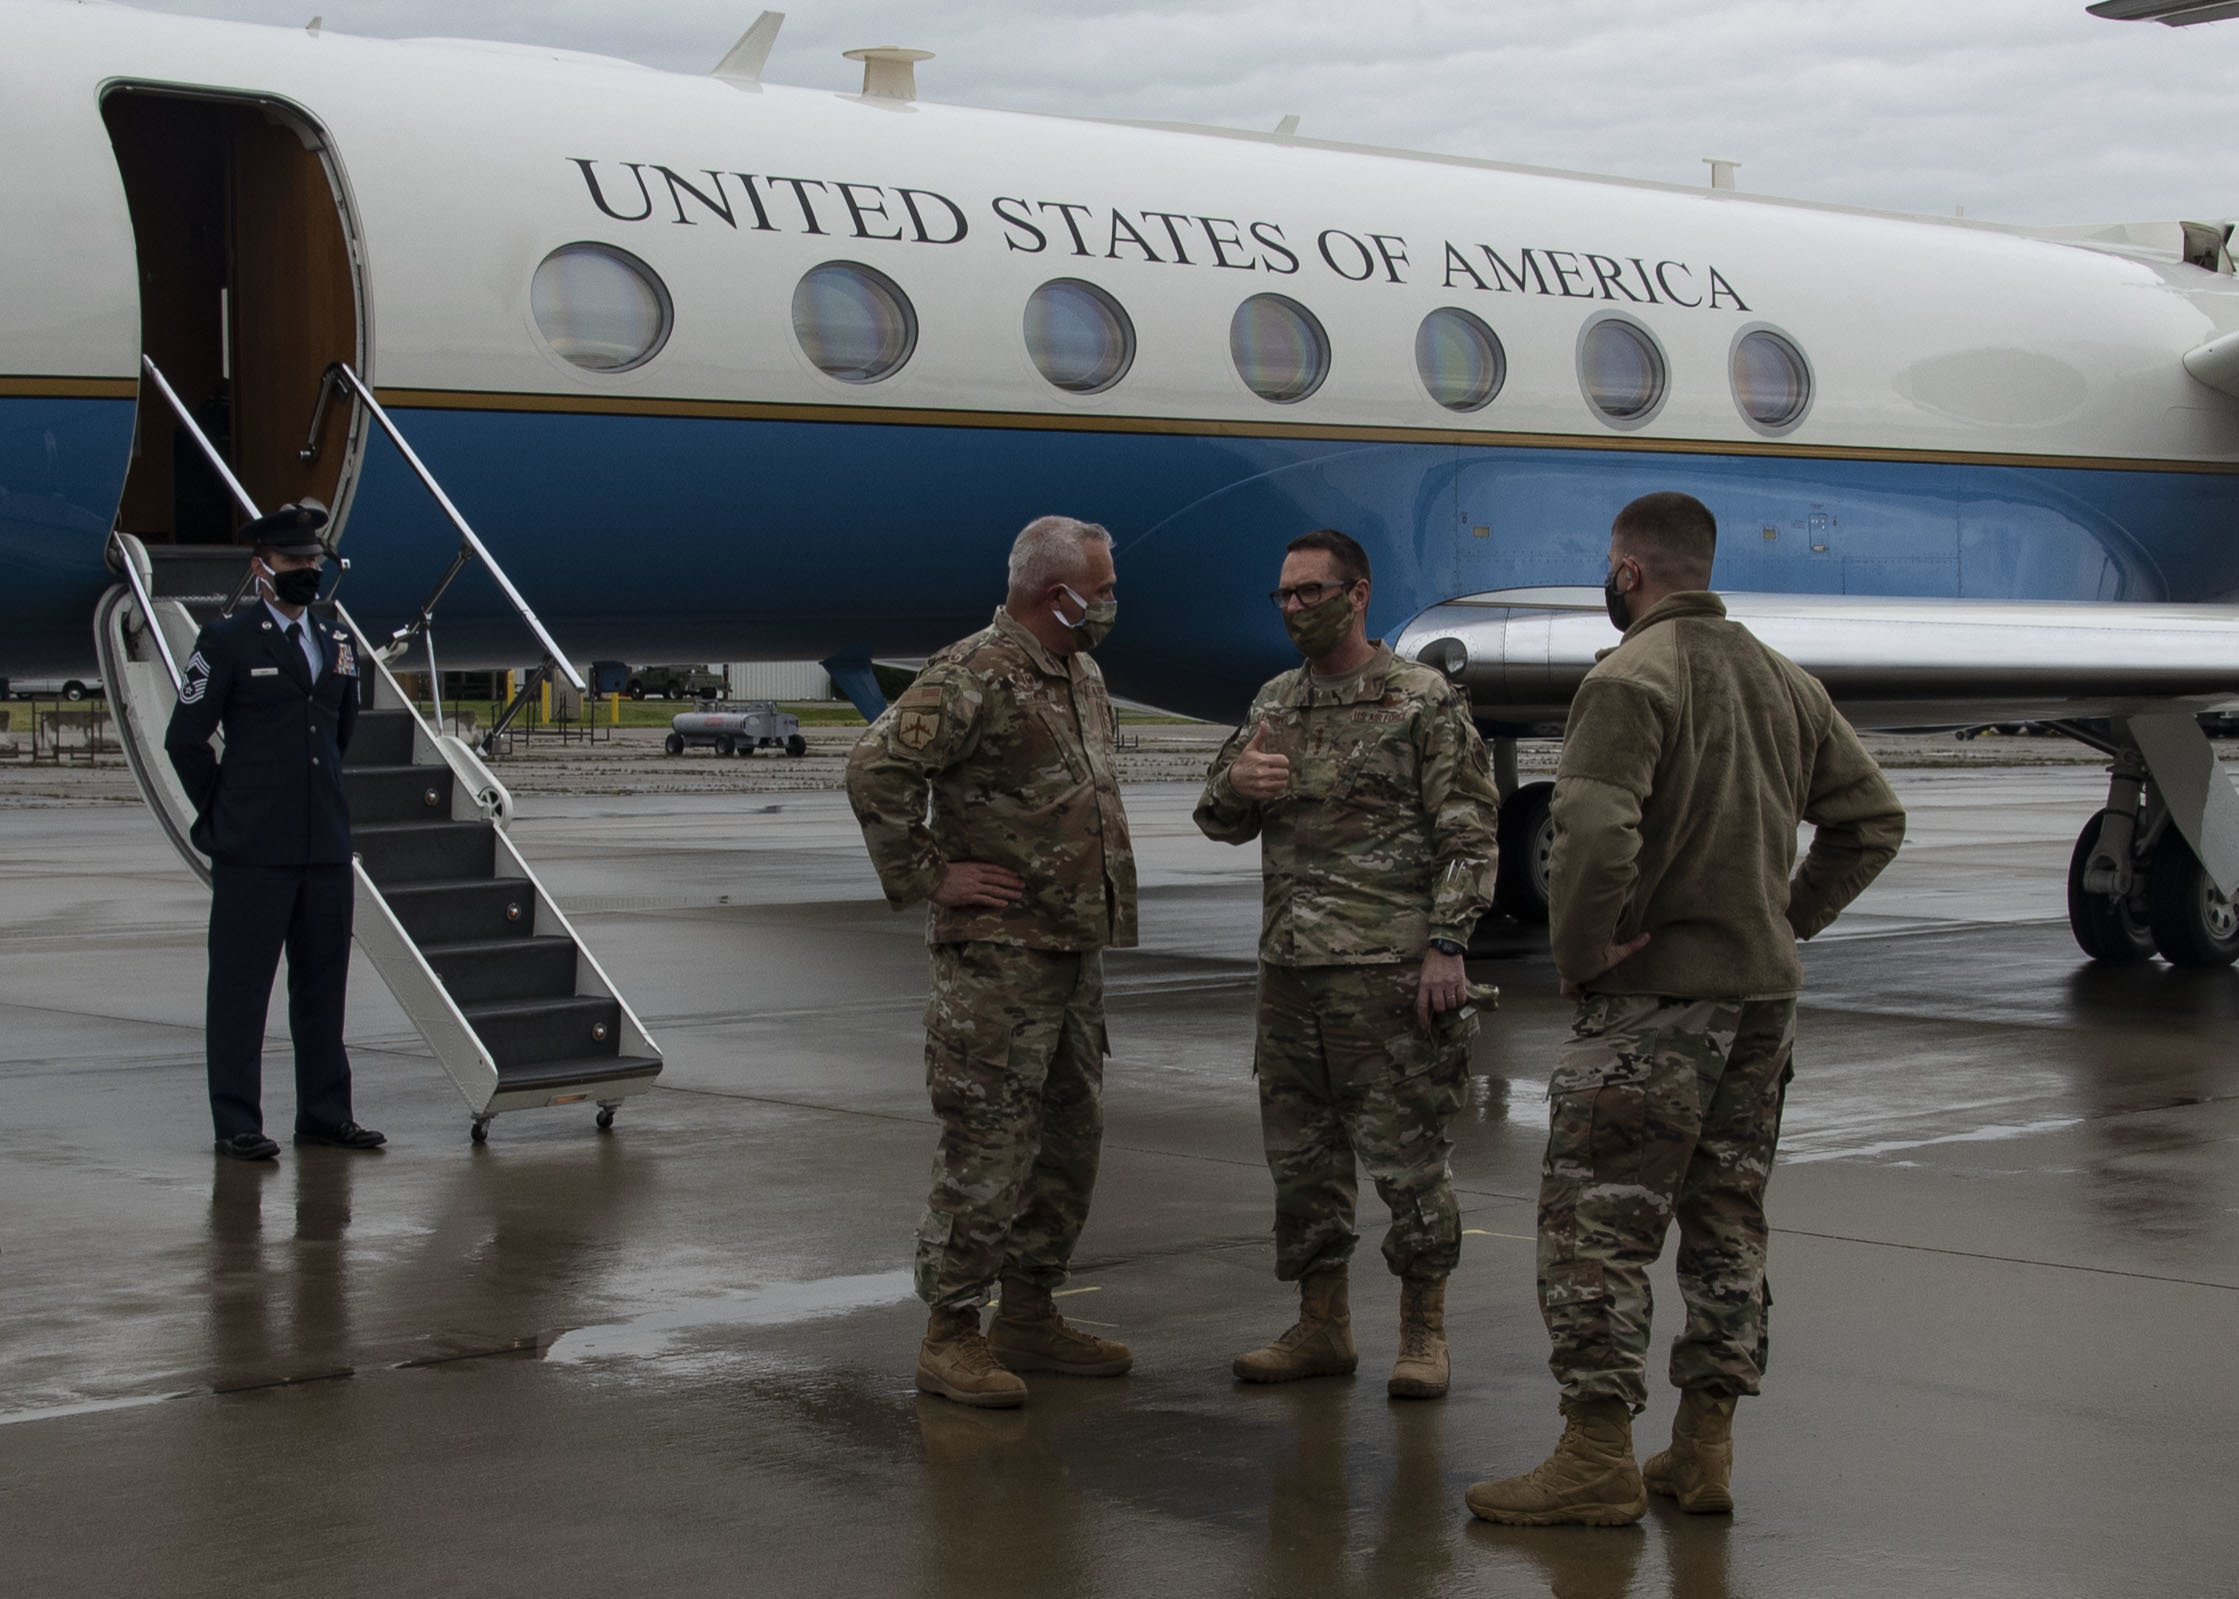 Gen. Joseph Lengyel talks with Airmen on tarmak of plane.